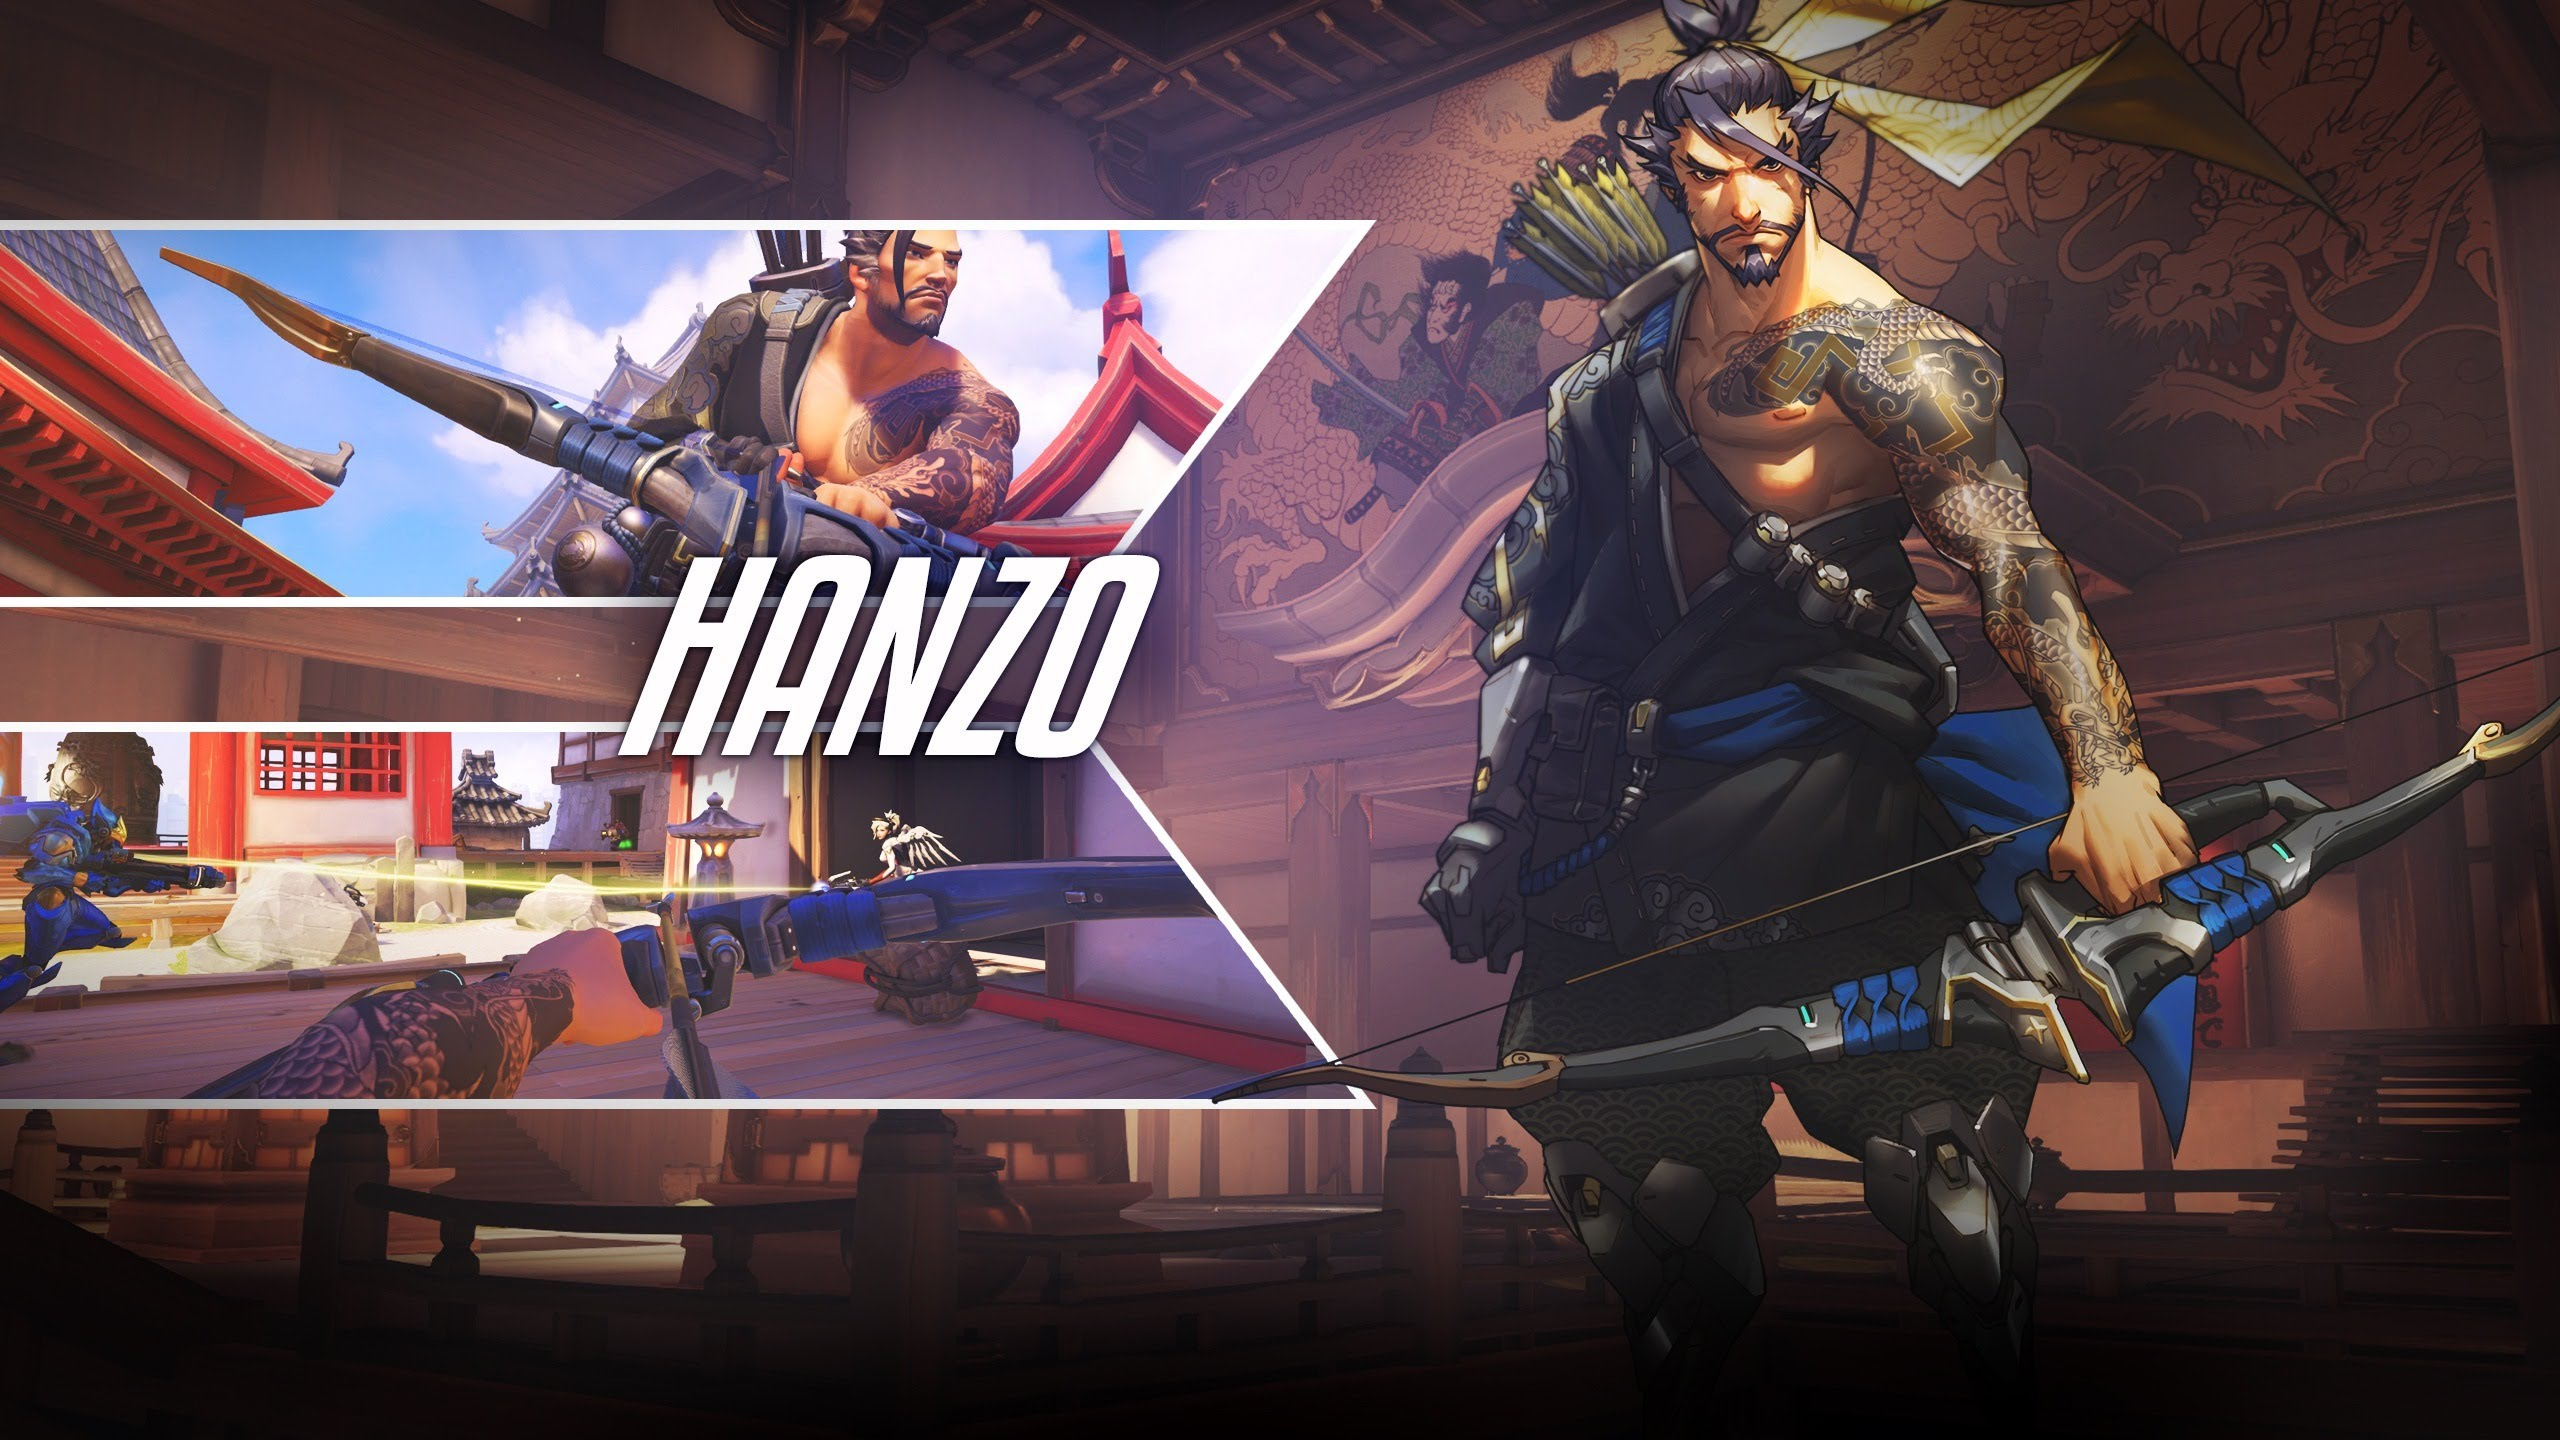 Overwatch : Hanzo Widescreen